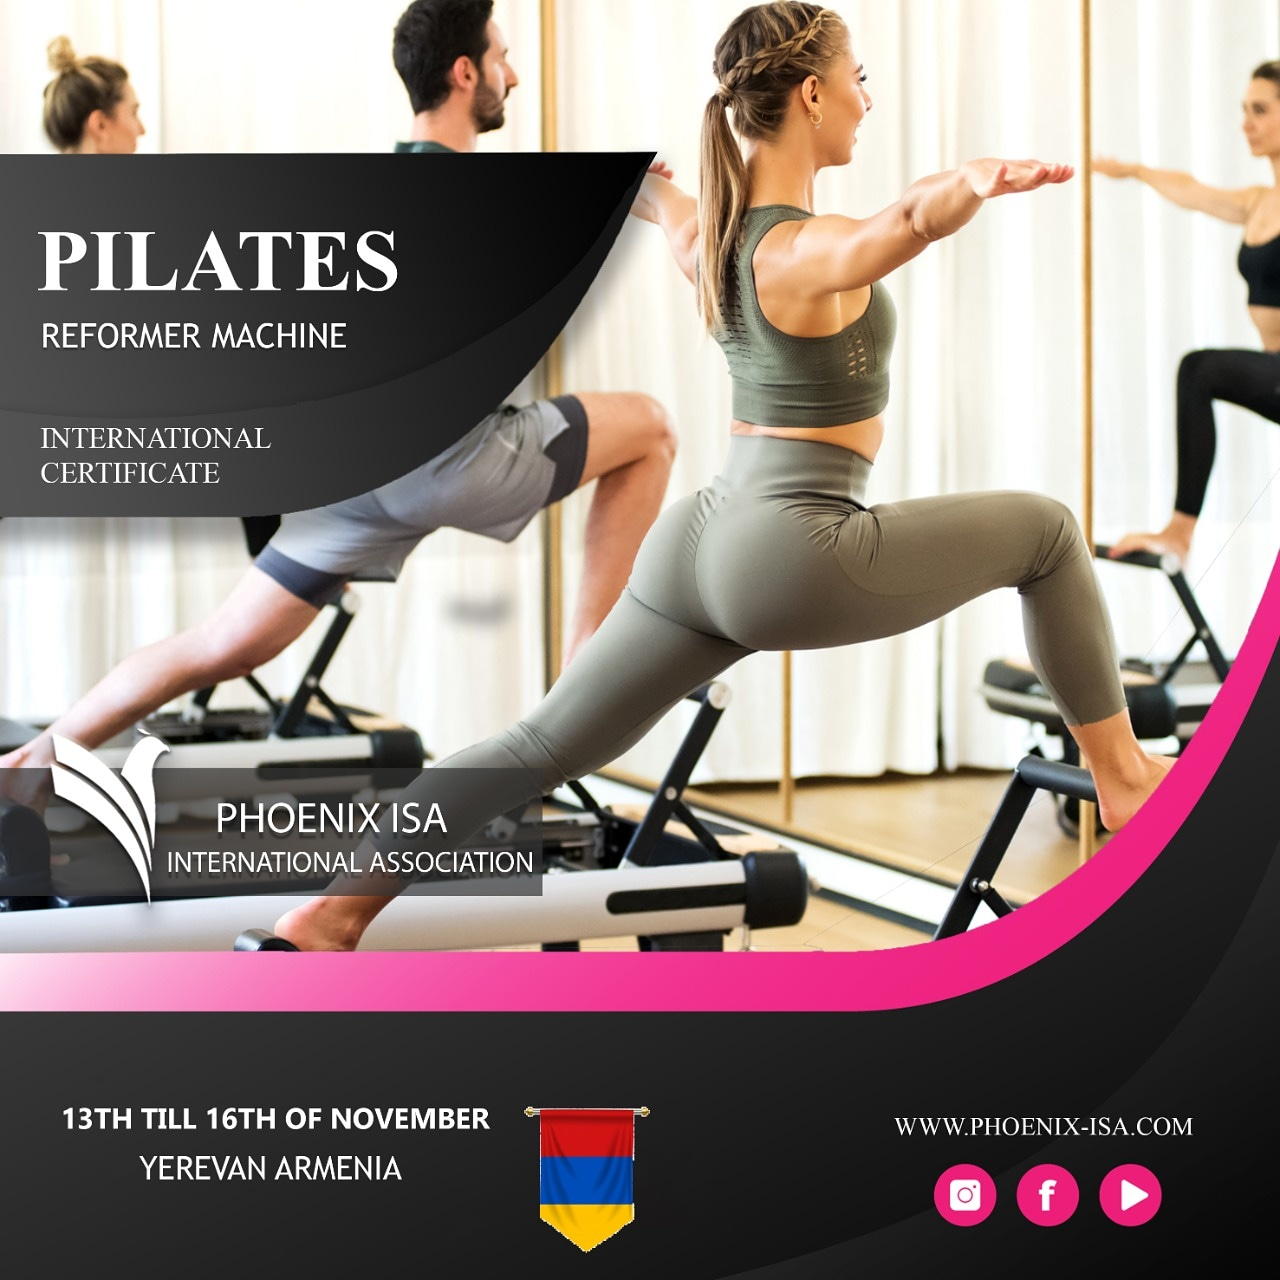 Let's learn pilates reformer